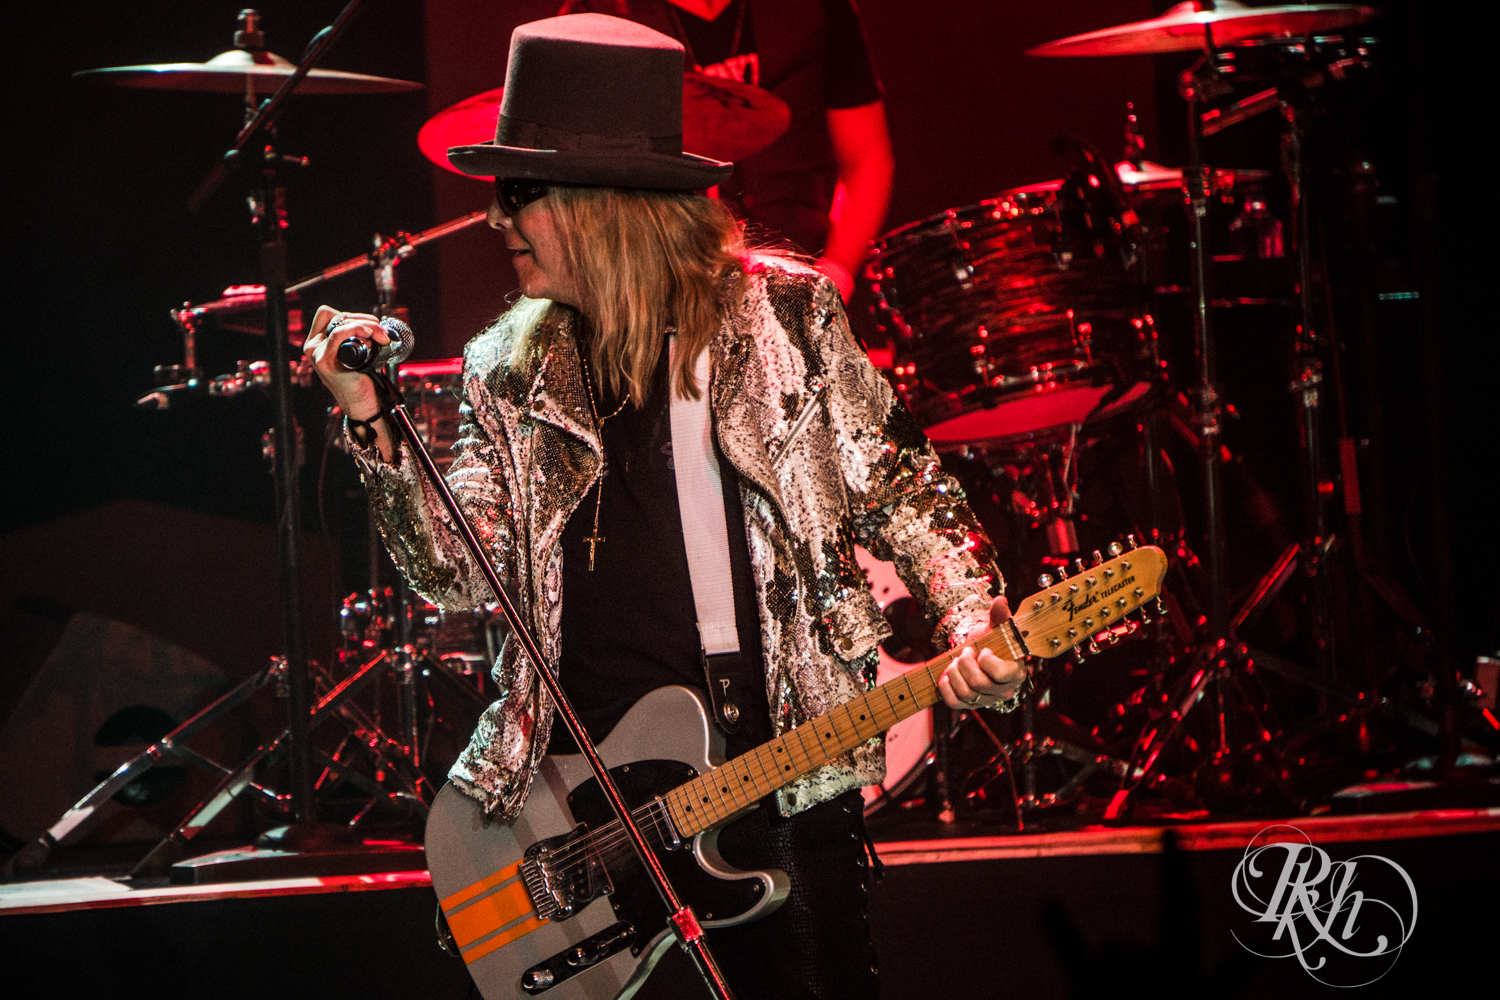 Cheap Trick - Mystic Lake Casino - RKH Images  (11 of 15).jpg